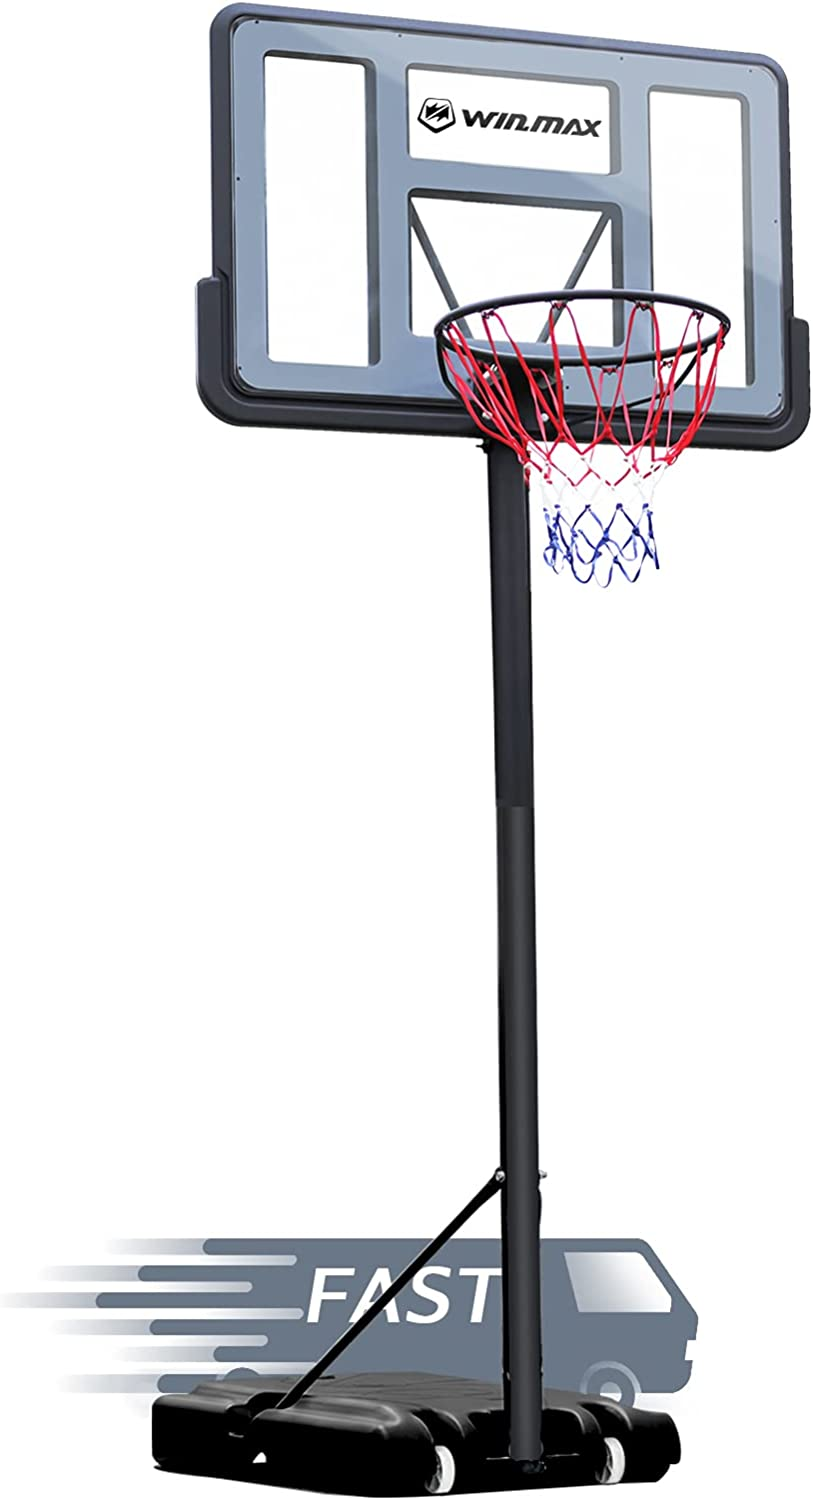 WIN.MAX Portable Basketball Hoop Goal System 4.8-10ft Adjustable 44in Backboard for Kids/Adults Indoor Outdoor : Sports & Outdoors